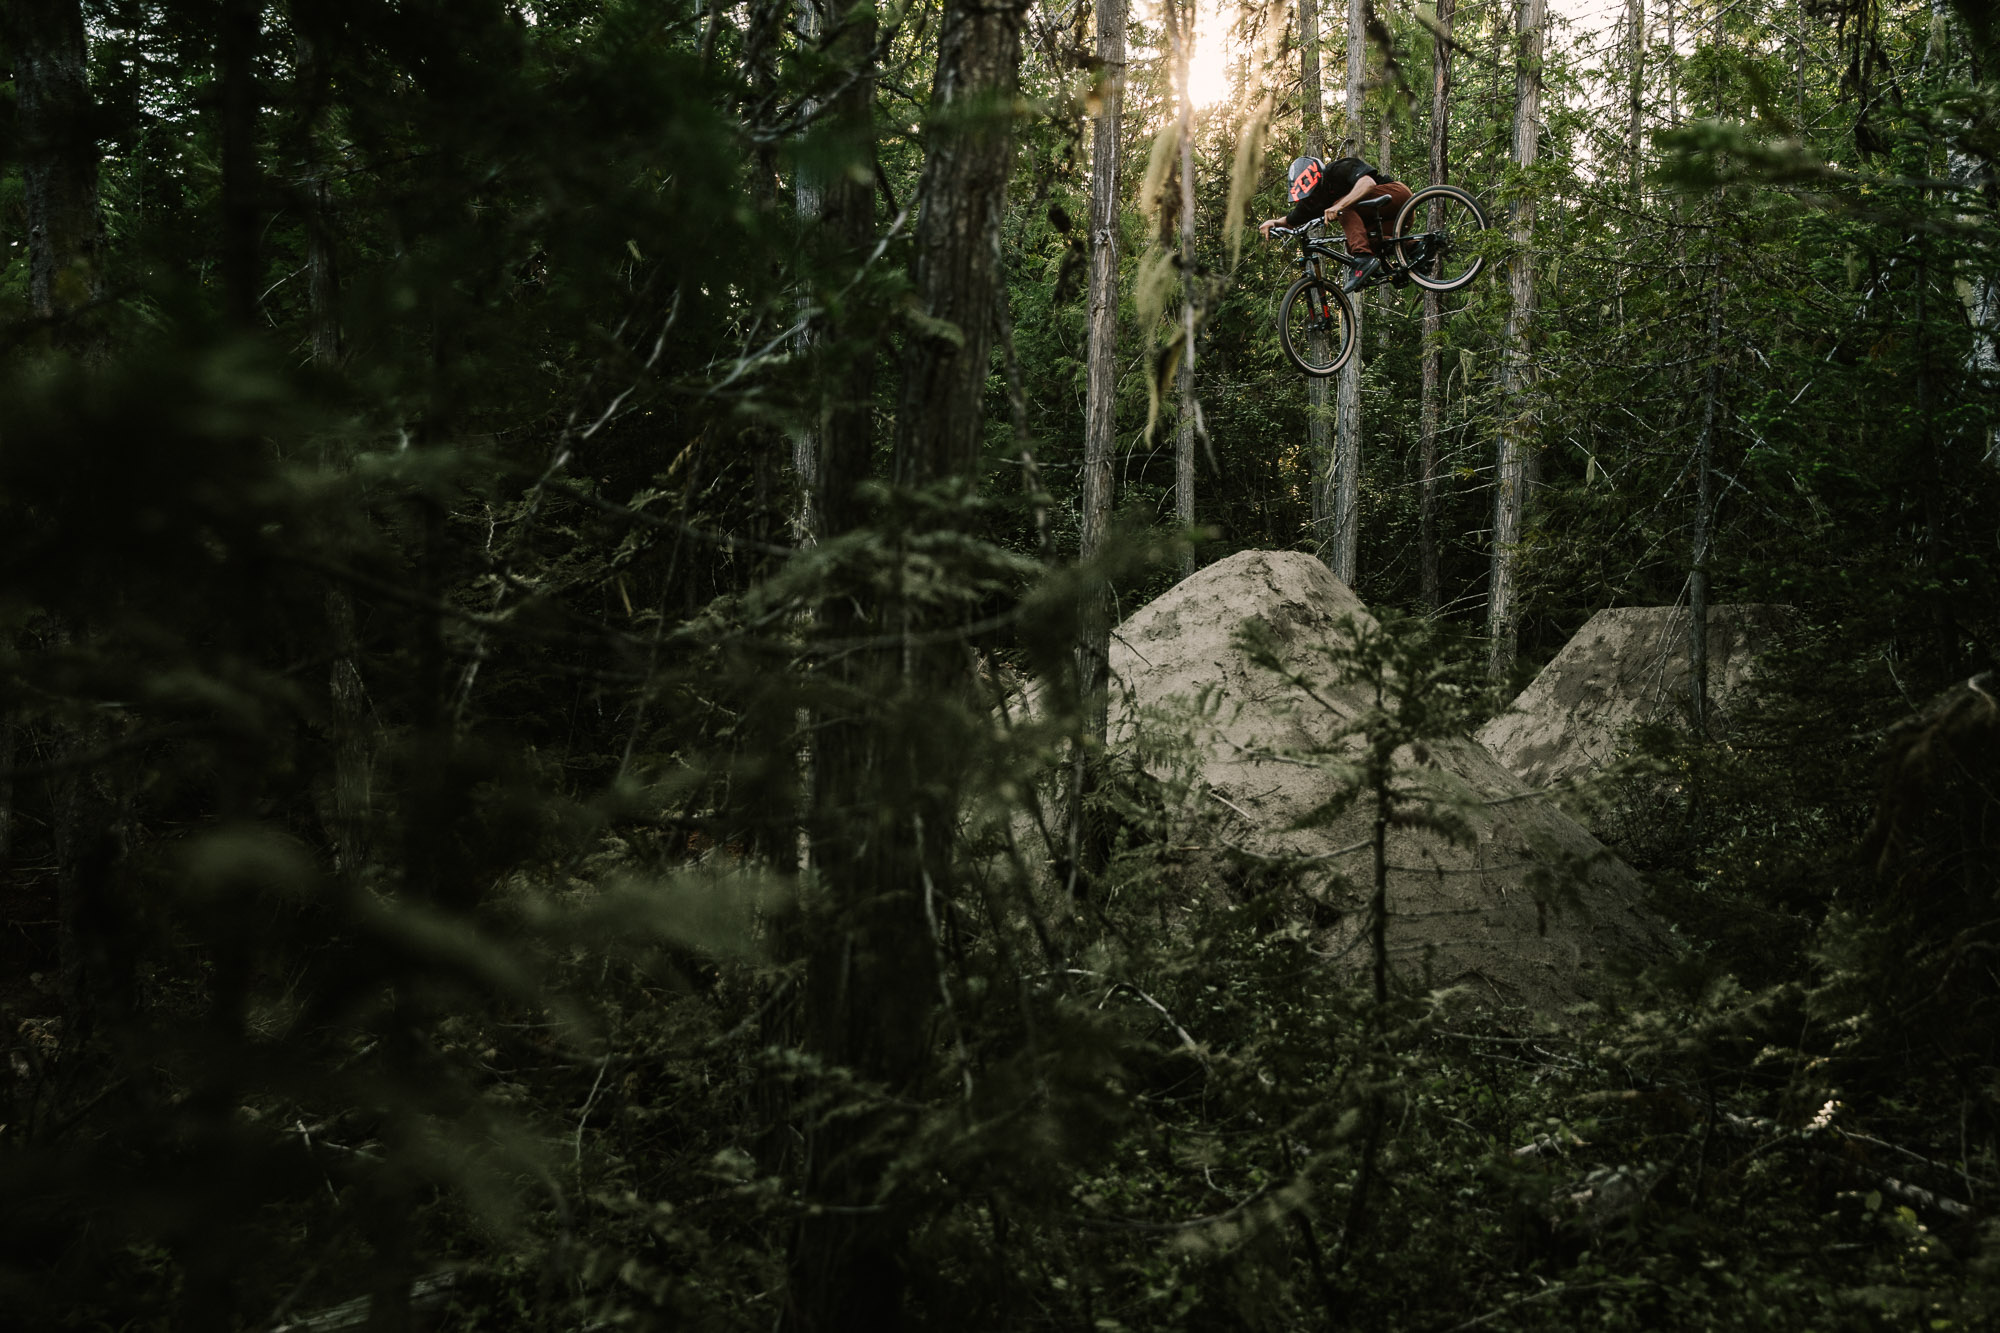 Photographer: Robb Thompson / Rider: Bas van Steenbergen / Location:  Vernon, BC, Canada // Contact: Robb Thompson / Address: 11709 Palfrey Dr, Coldstream BC, V1B2E4 / Phone: (250)-307-1047 / website: www.robbthompson.ca